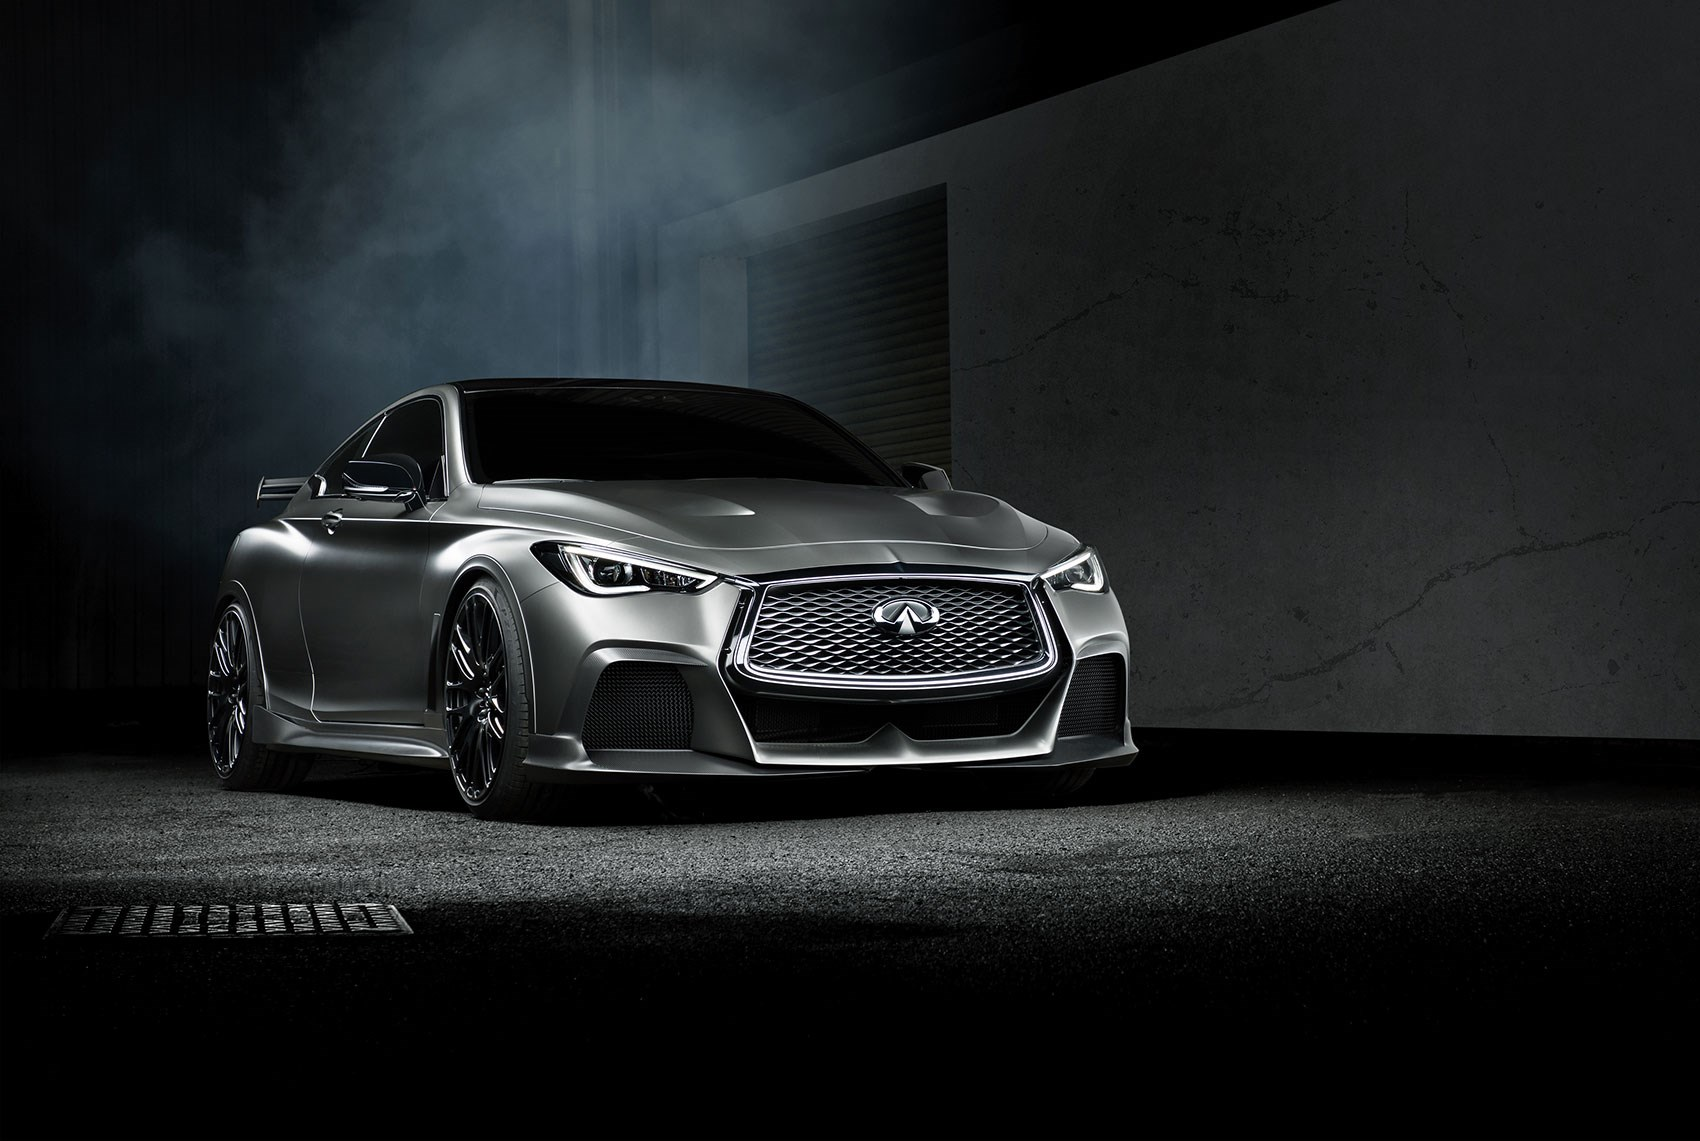 Infiniti Q60 Project Black S previewed ahead of Geneva